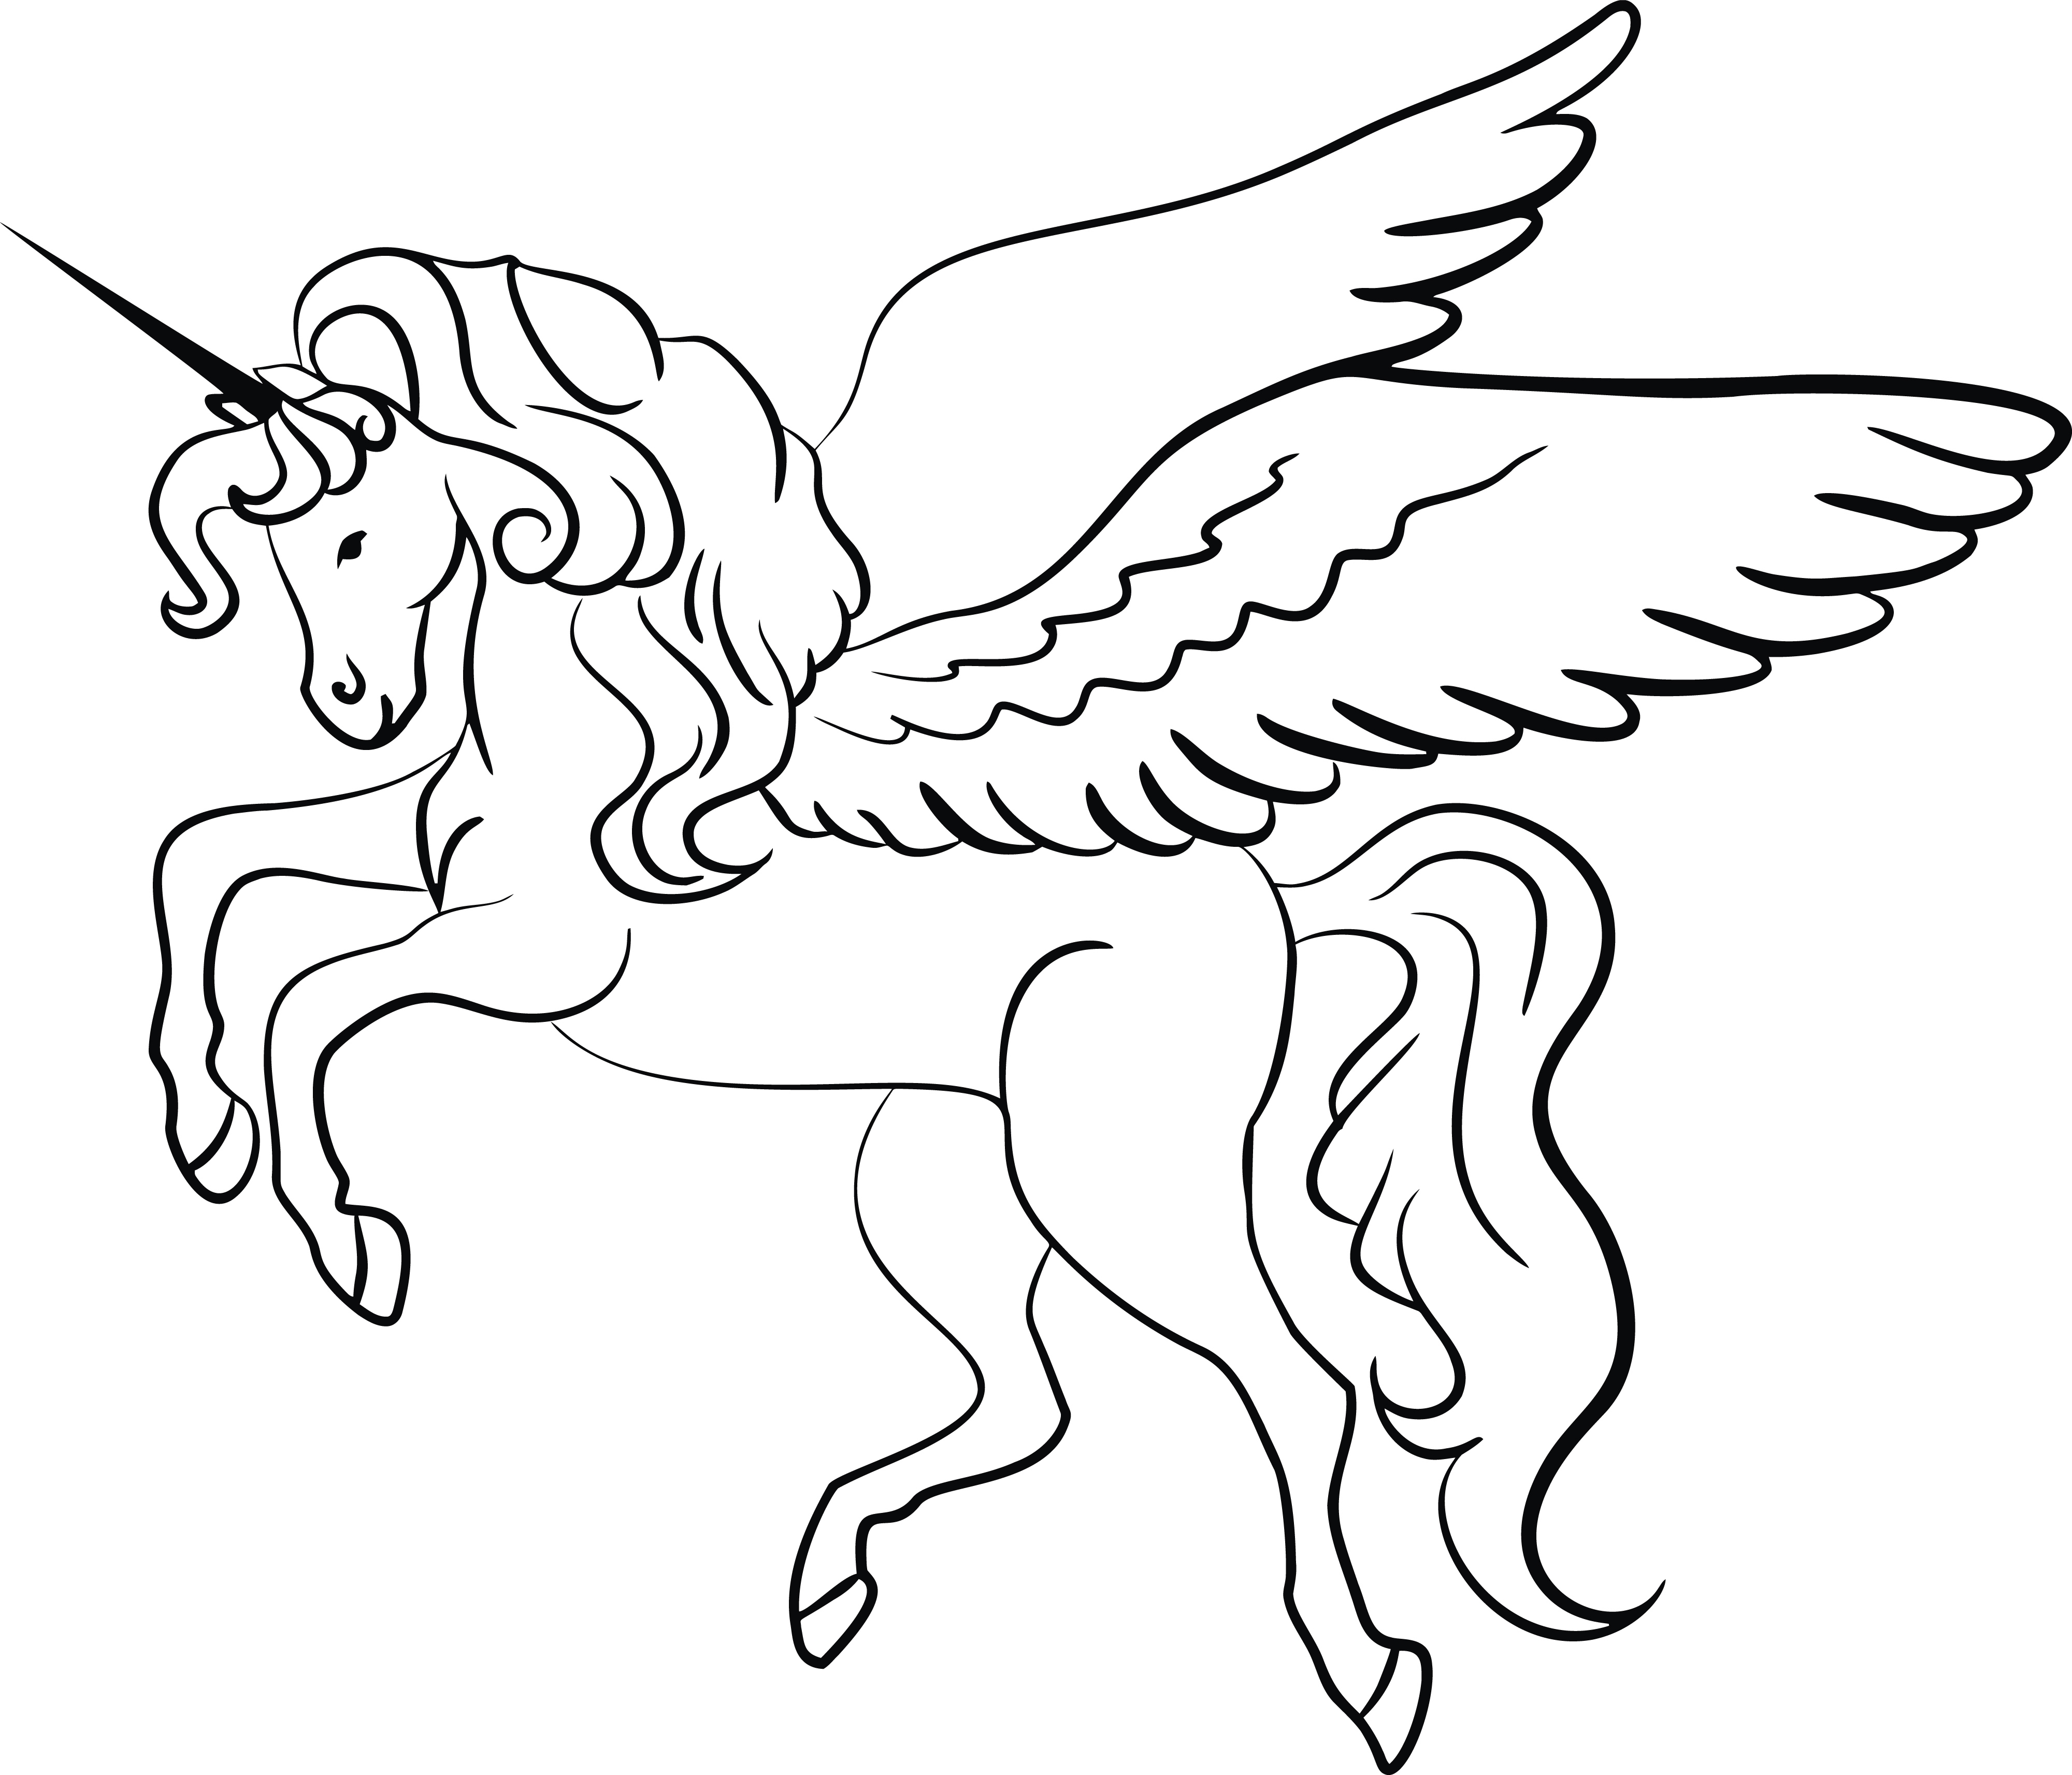 54 Unicorn Black And White free clipart.